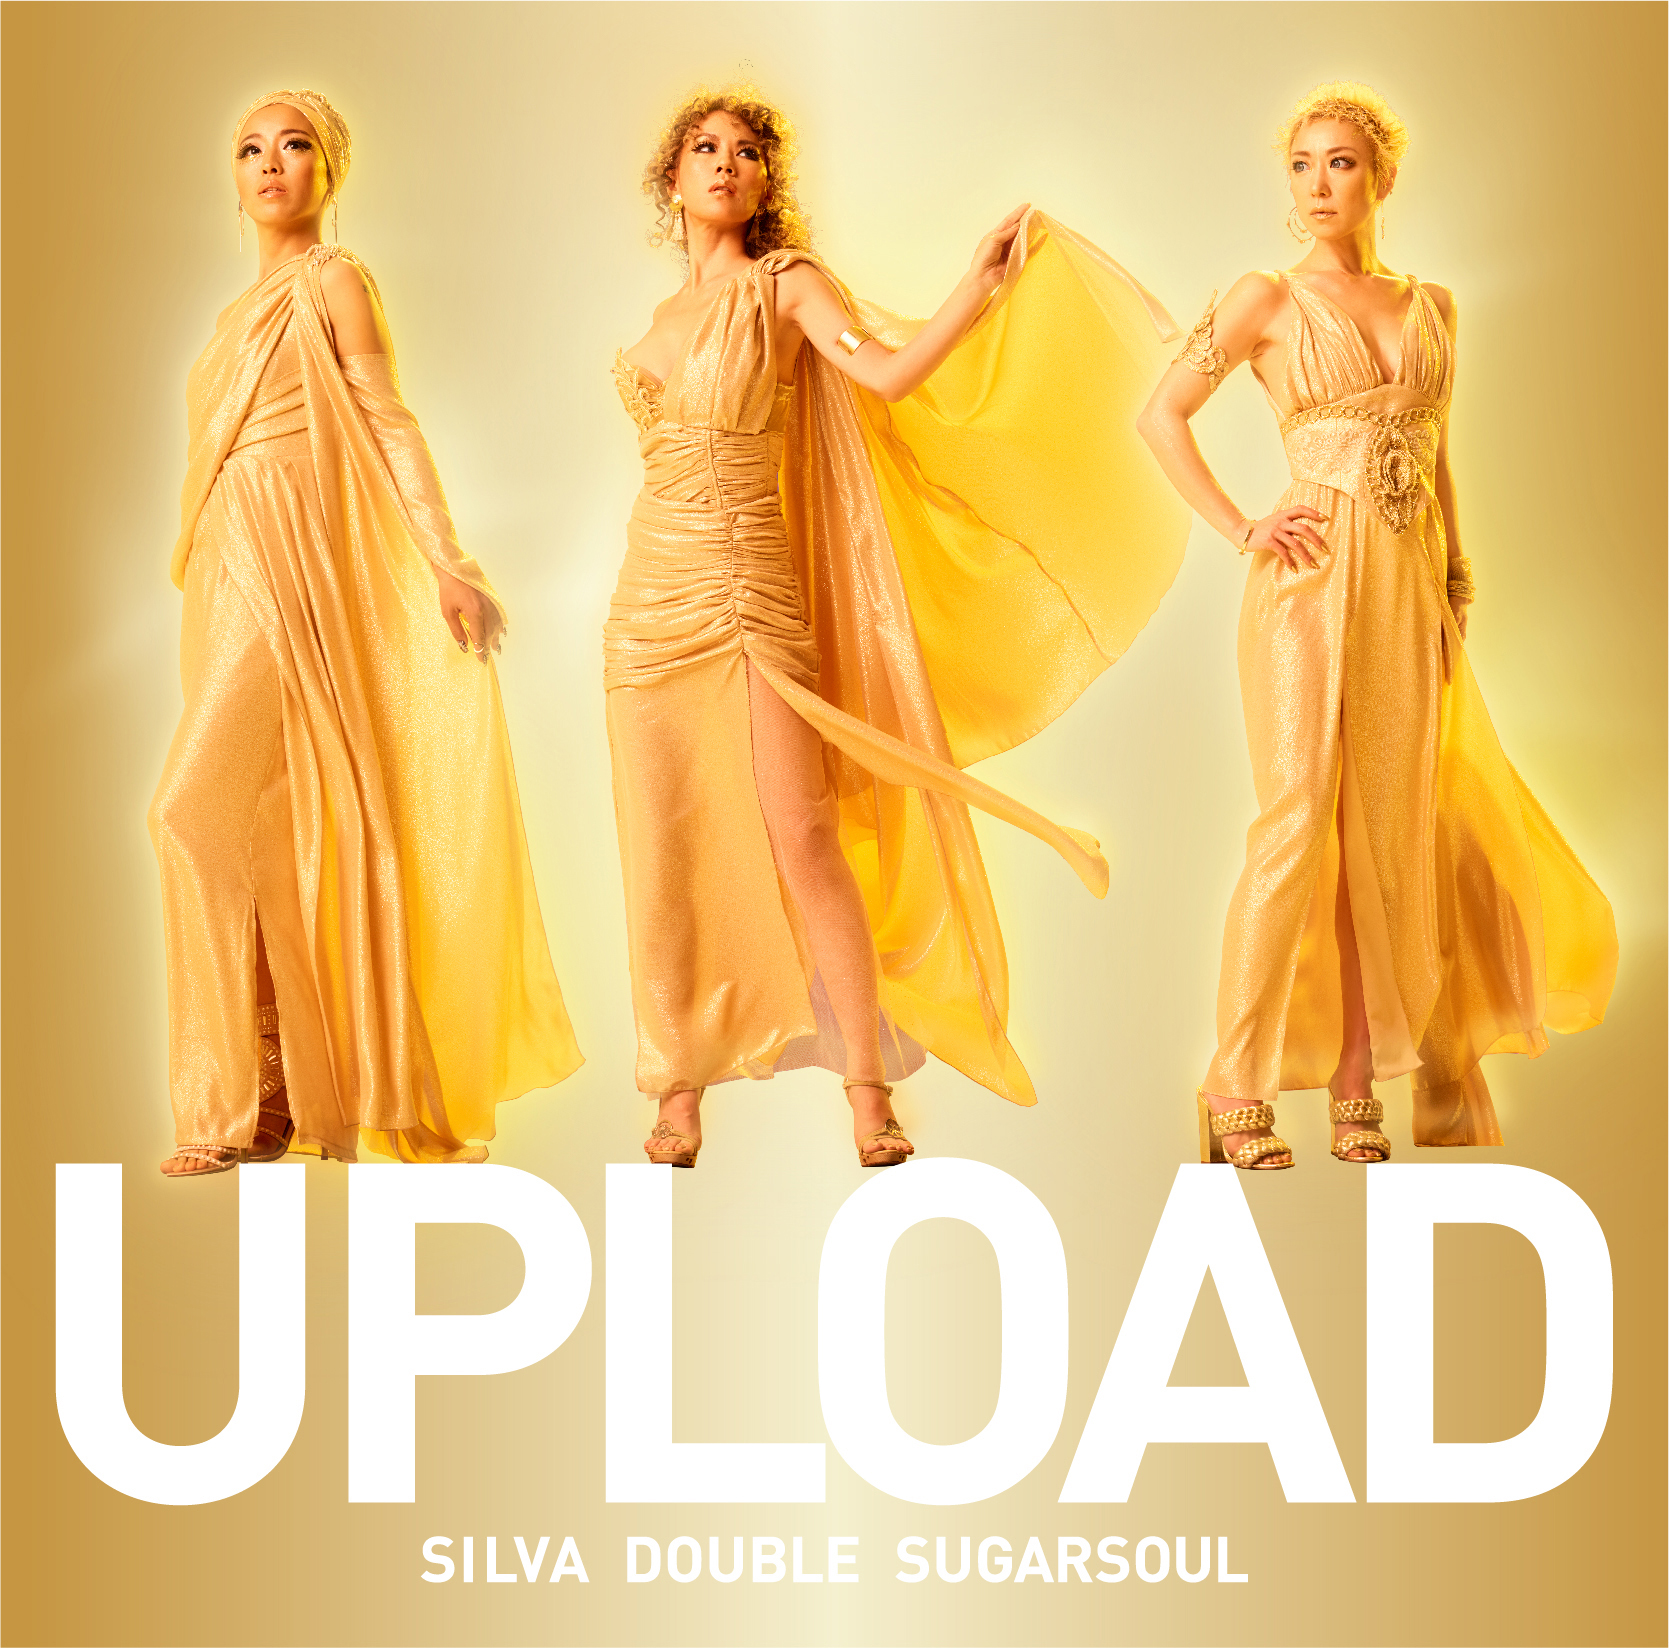 20th Anniversary EP「UPLOAD」 SILVA DOUBLE SUGARSOUL初回限定盤